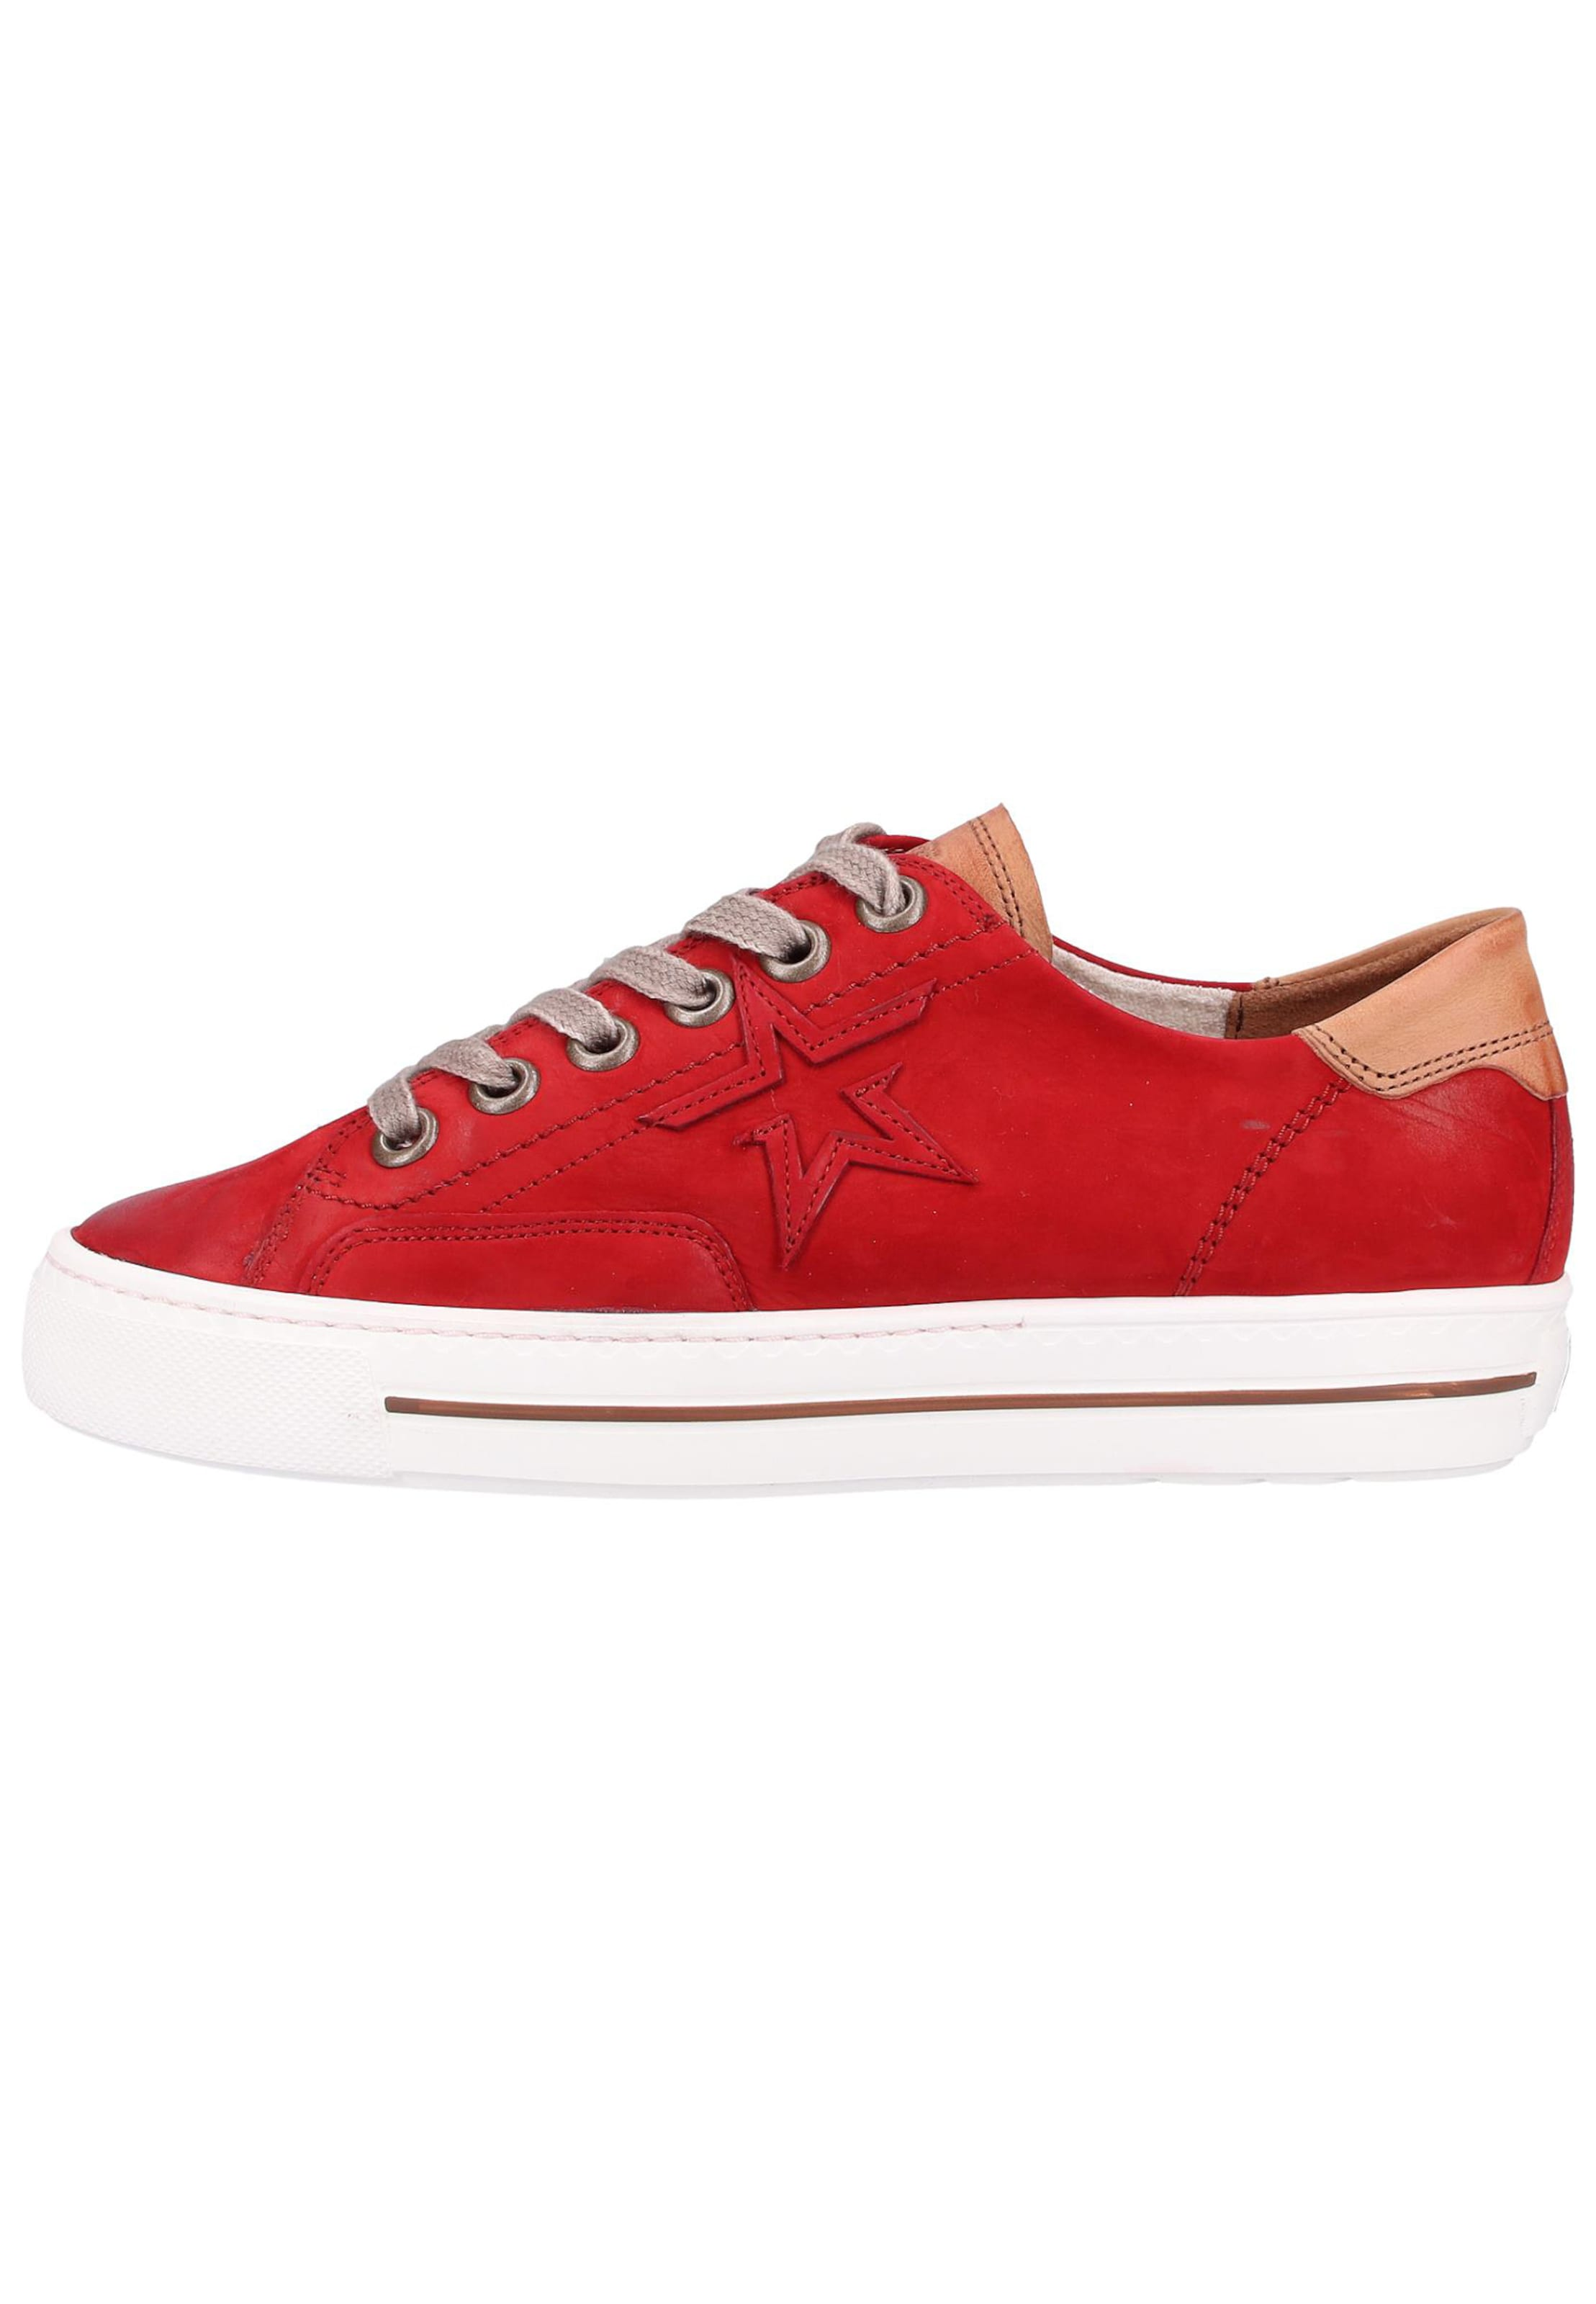 Paul Baskets Green Basses En Rouge sxrChdBtQ